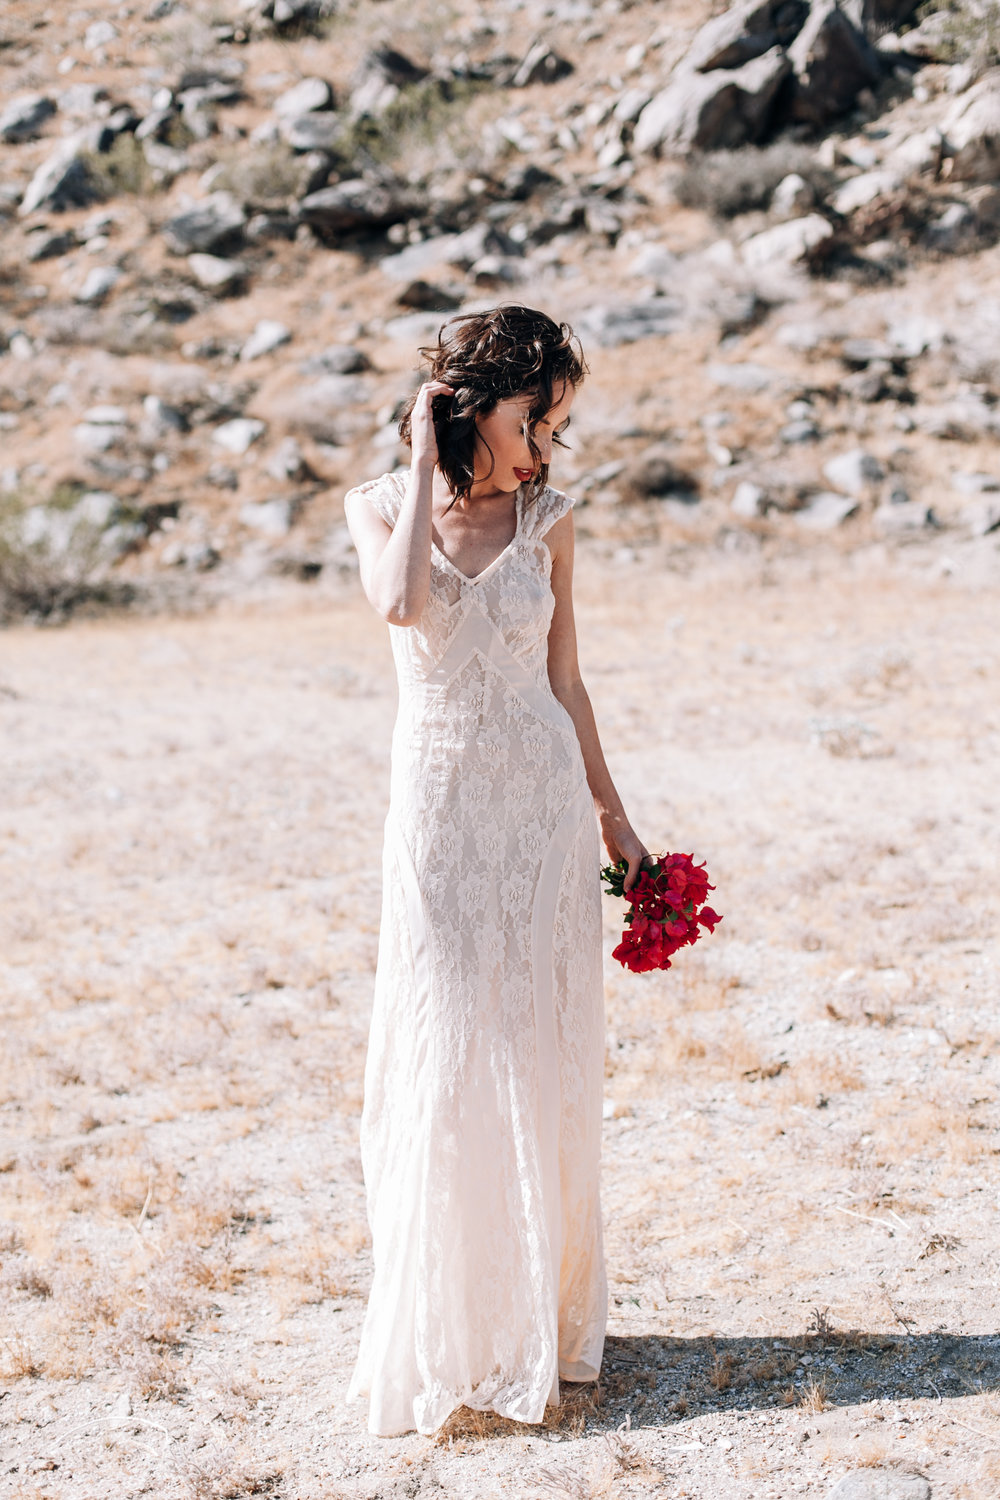 KaraNixonWeddings-PalmSprings-Elopement-8.jpg